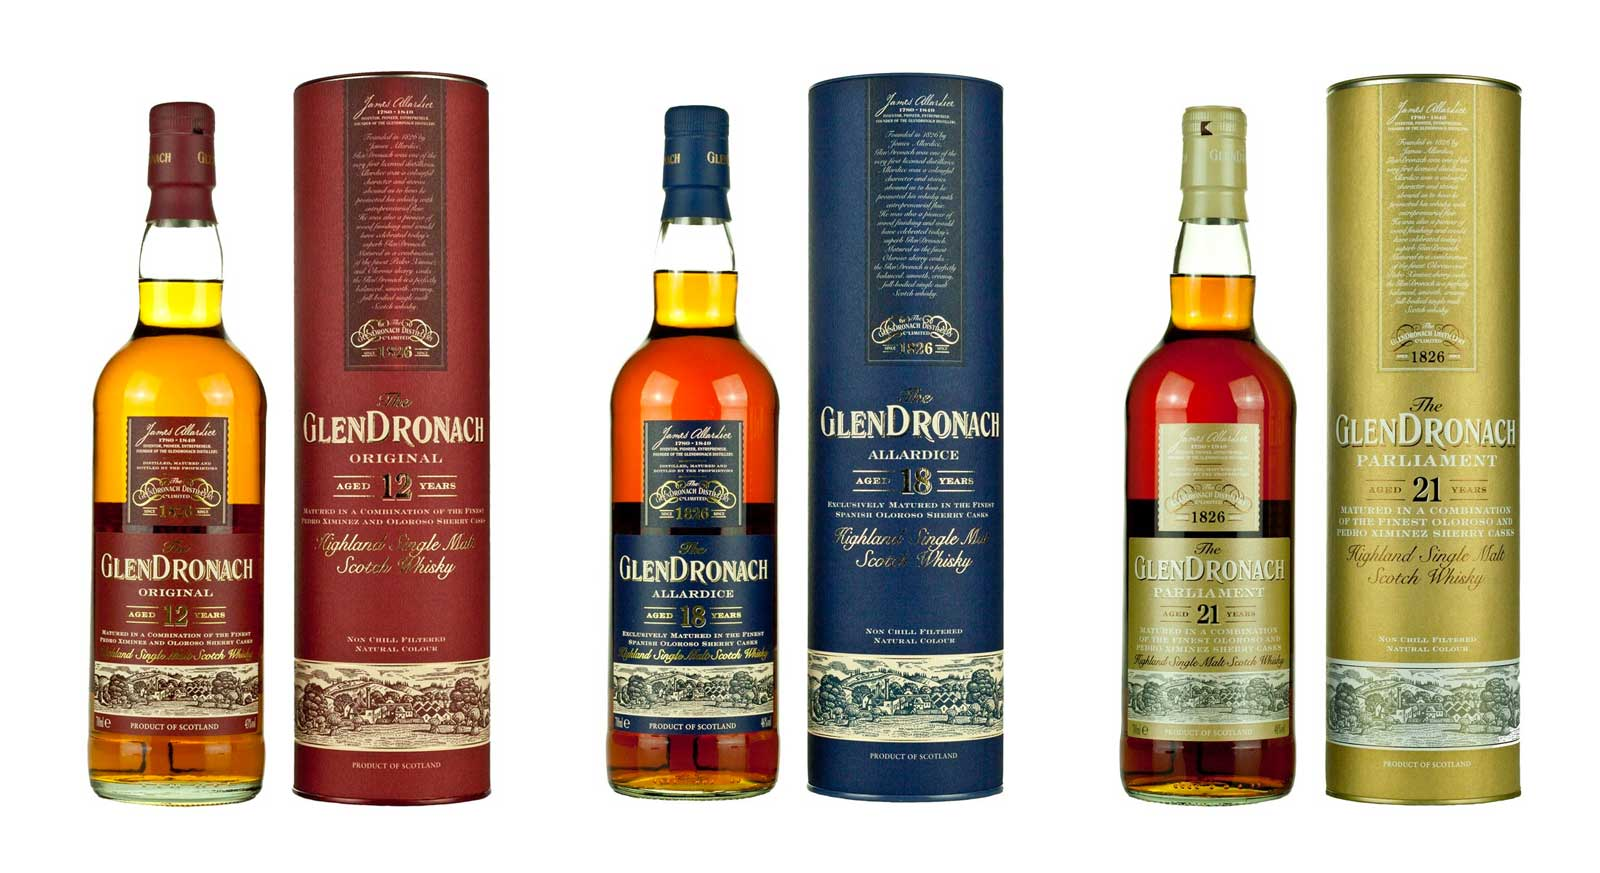 The GlenDronach Single Malt Scotch Whiskies